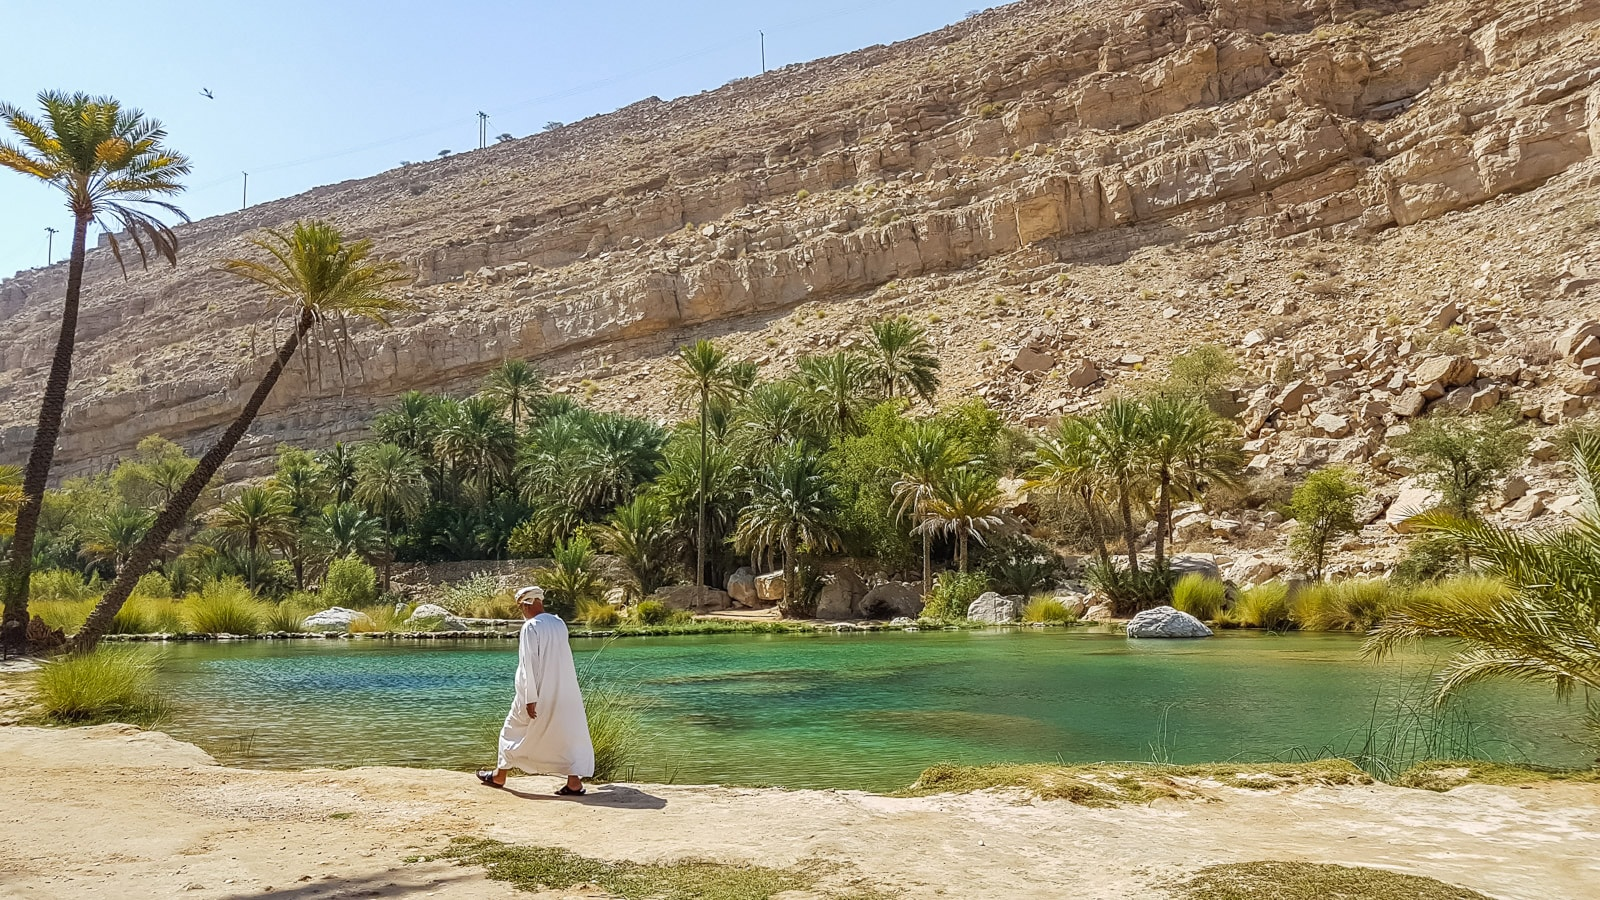 Oman Travel Video And 10 Reasons To Visit Oman Guide